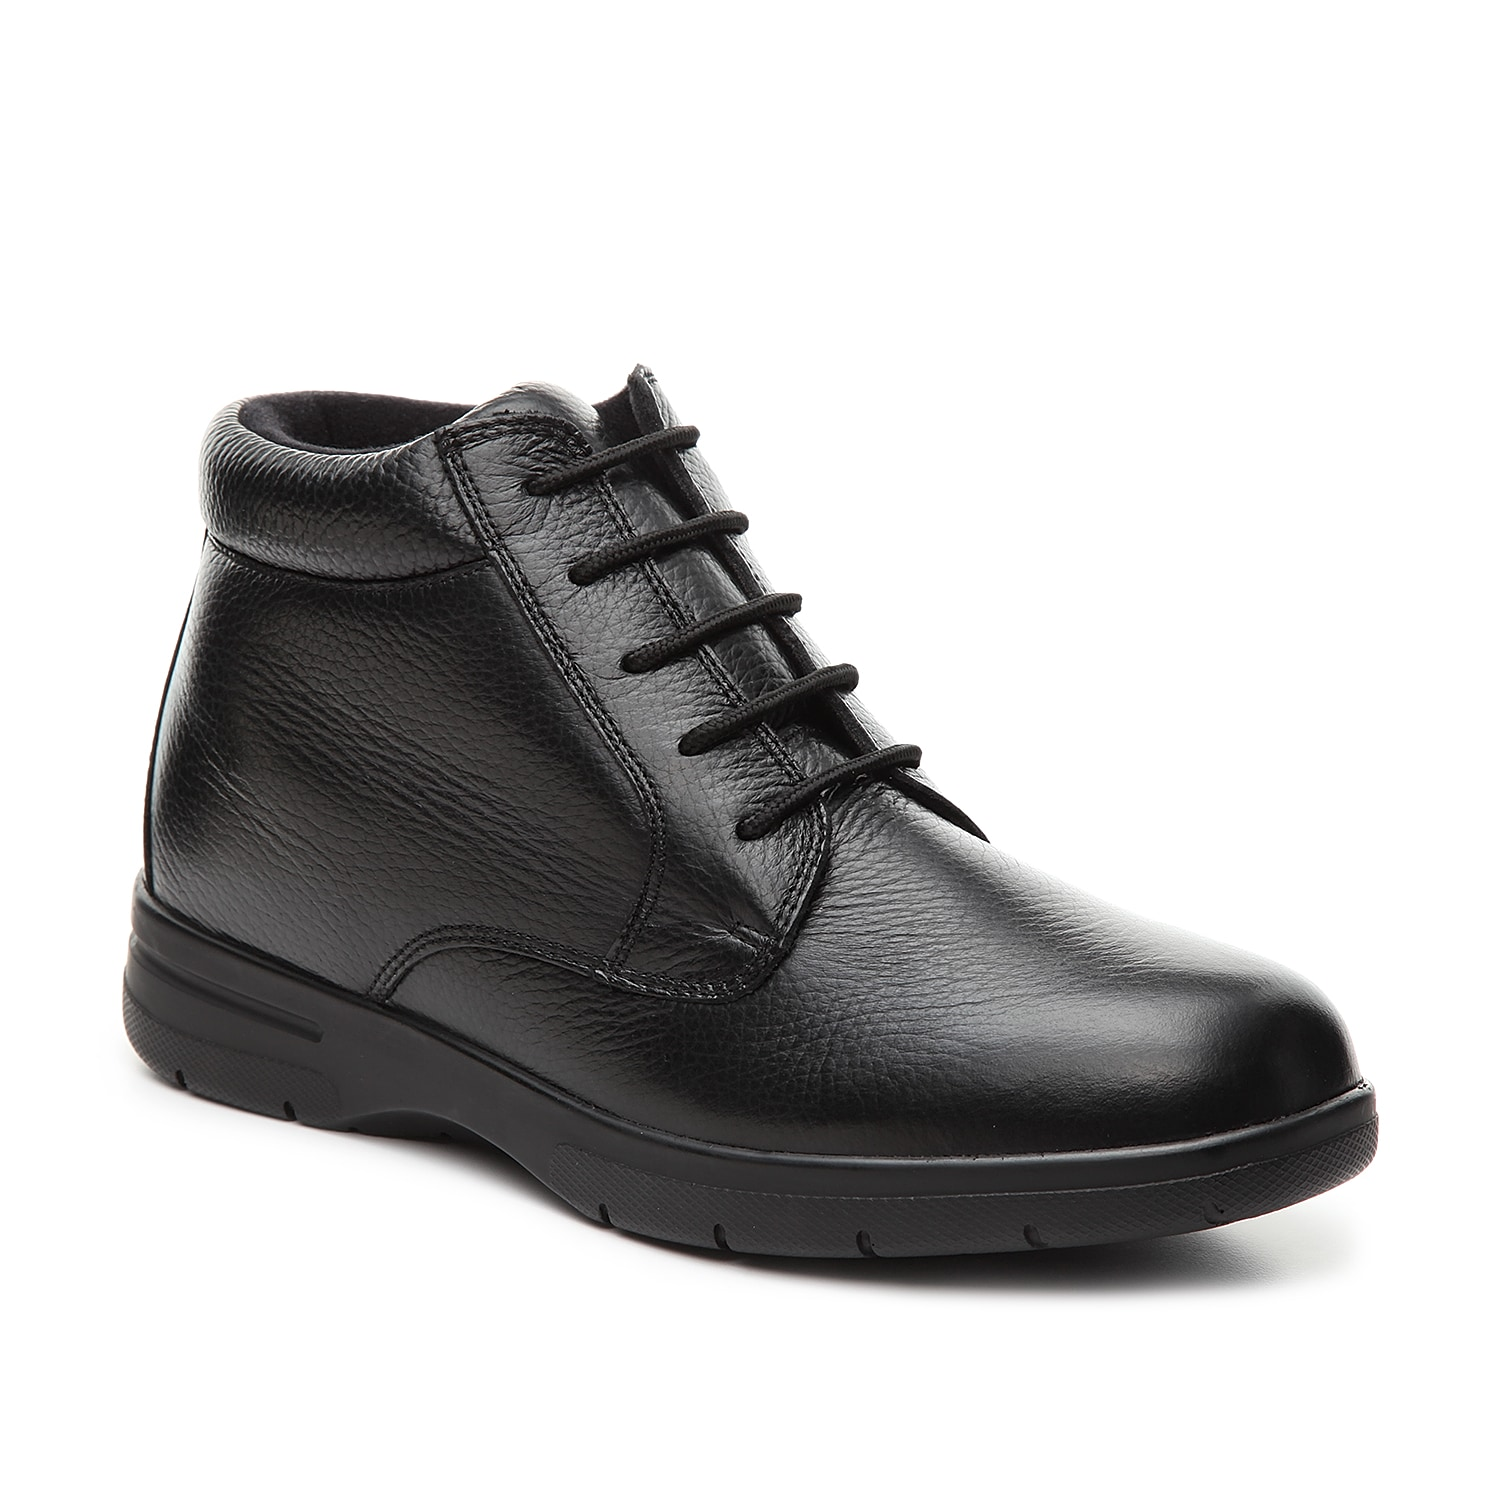 Look and feel great while wearing the Tucson boot from Drew. This leather pair comes equipped with a cushioned insole for custom comfort.